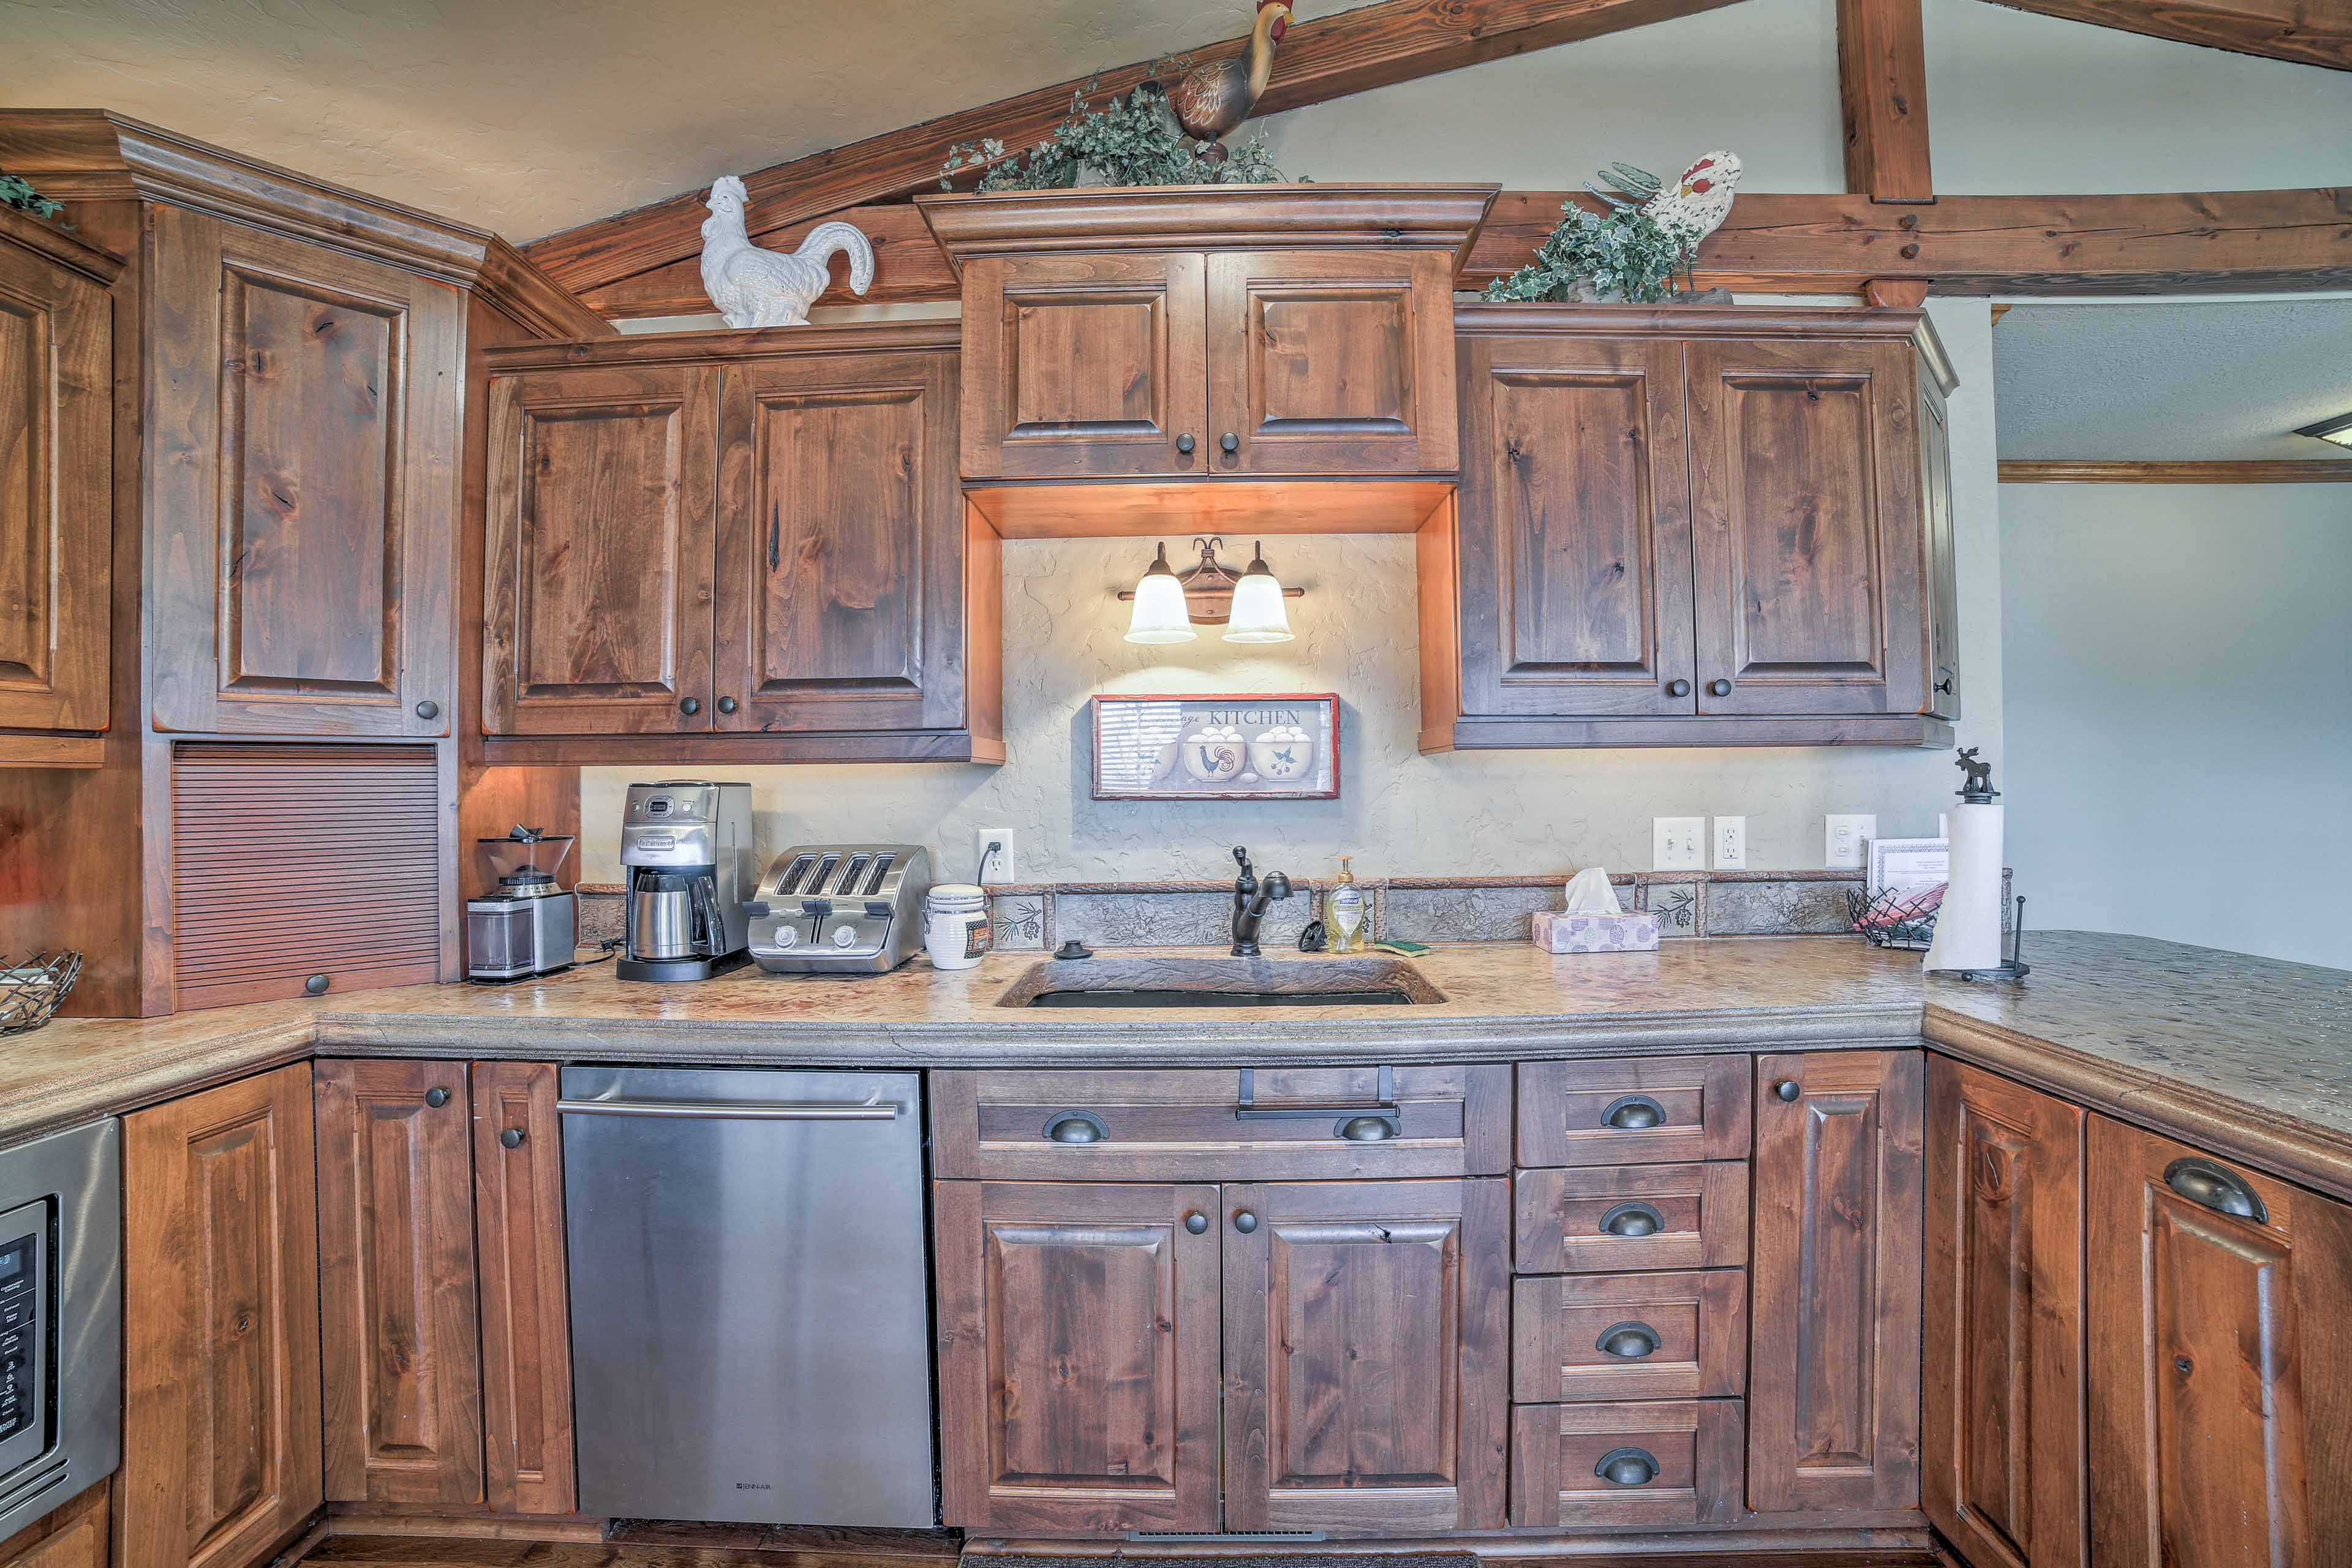 Stately wood cabinetry and granite counters give the kitchen an air of elegance.